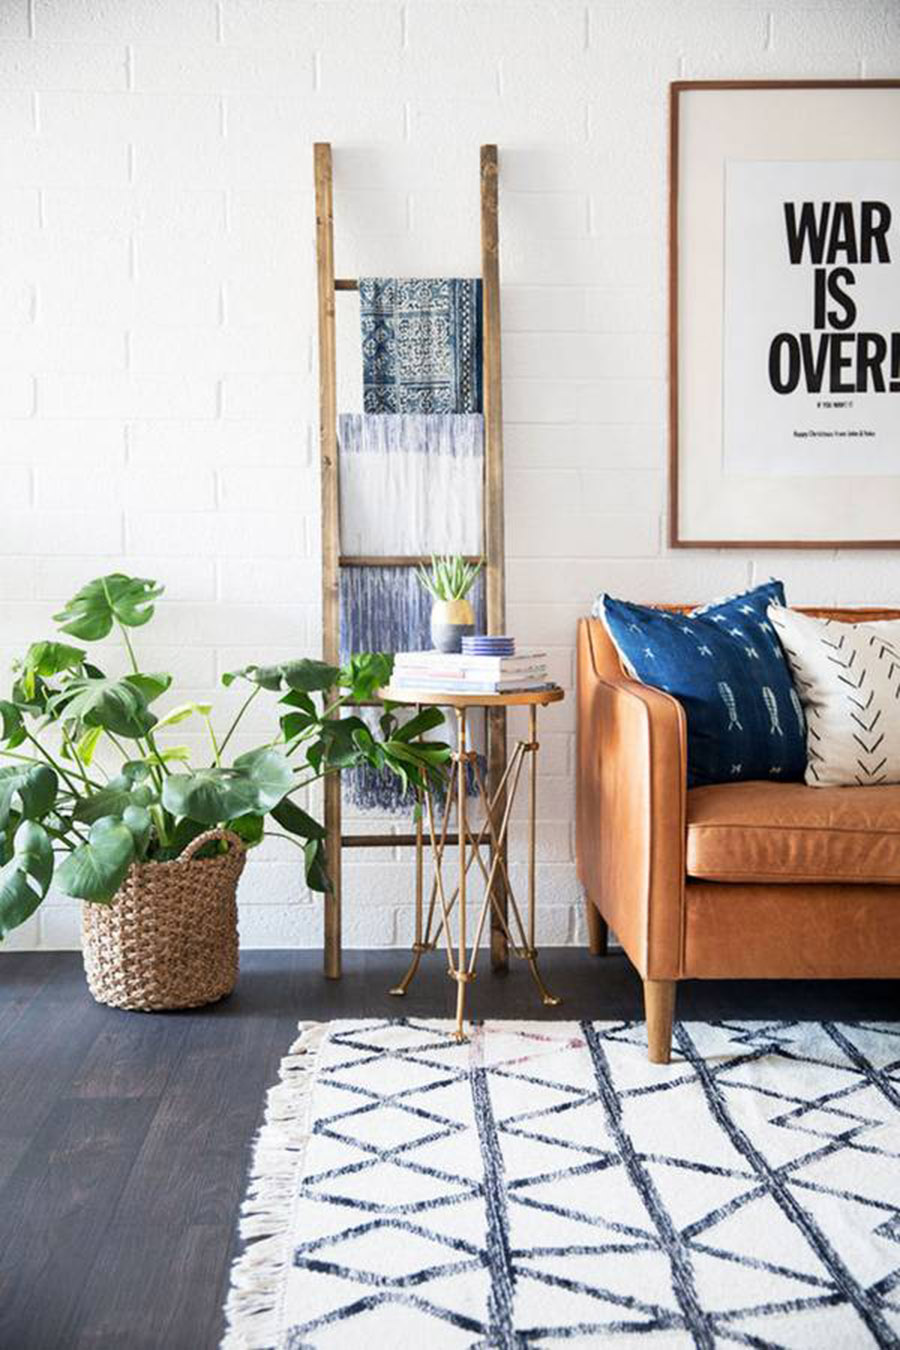 Home inspiration southwest boho minimalism a side of for Minimalist home decor ideas